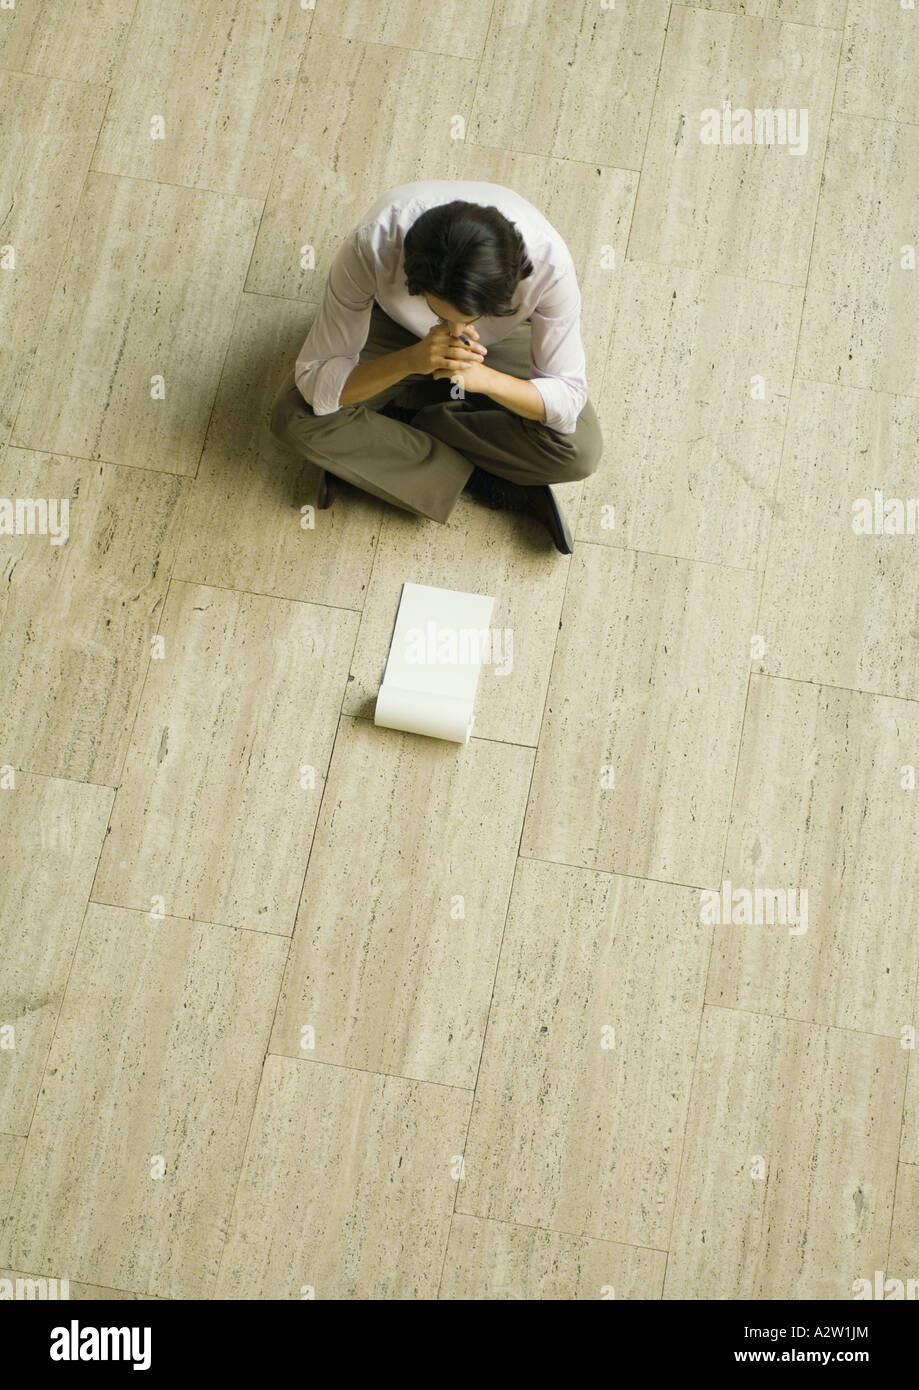 Man sitting on floor with blank pad of paper, high angle view - Stock Image